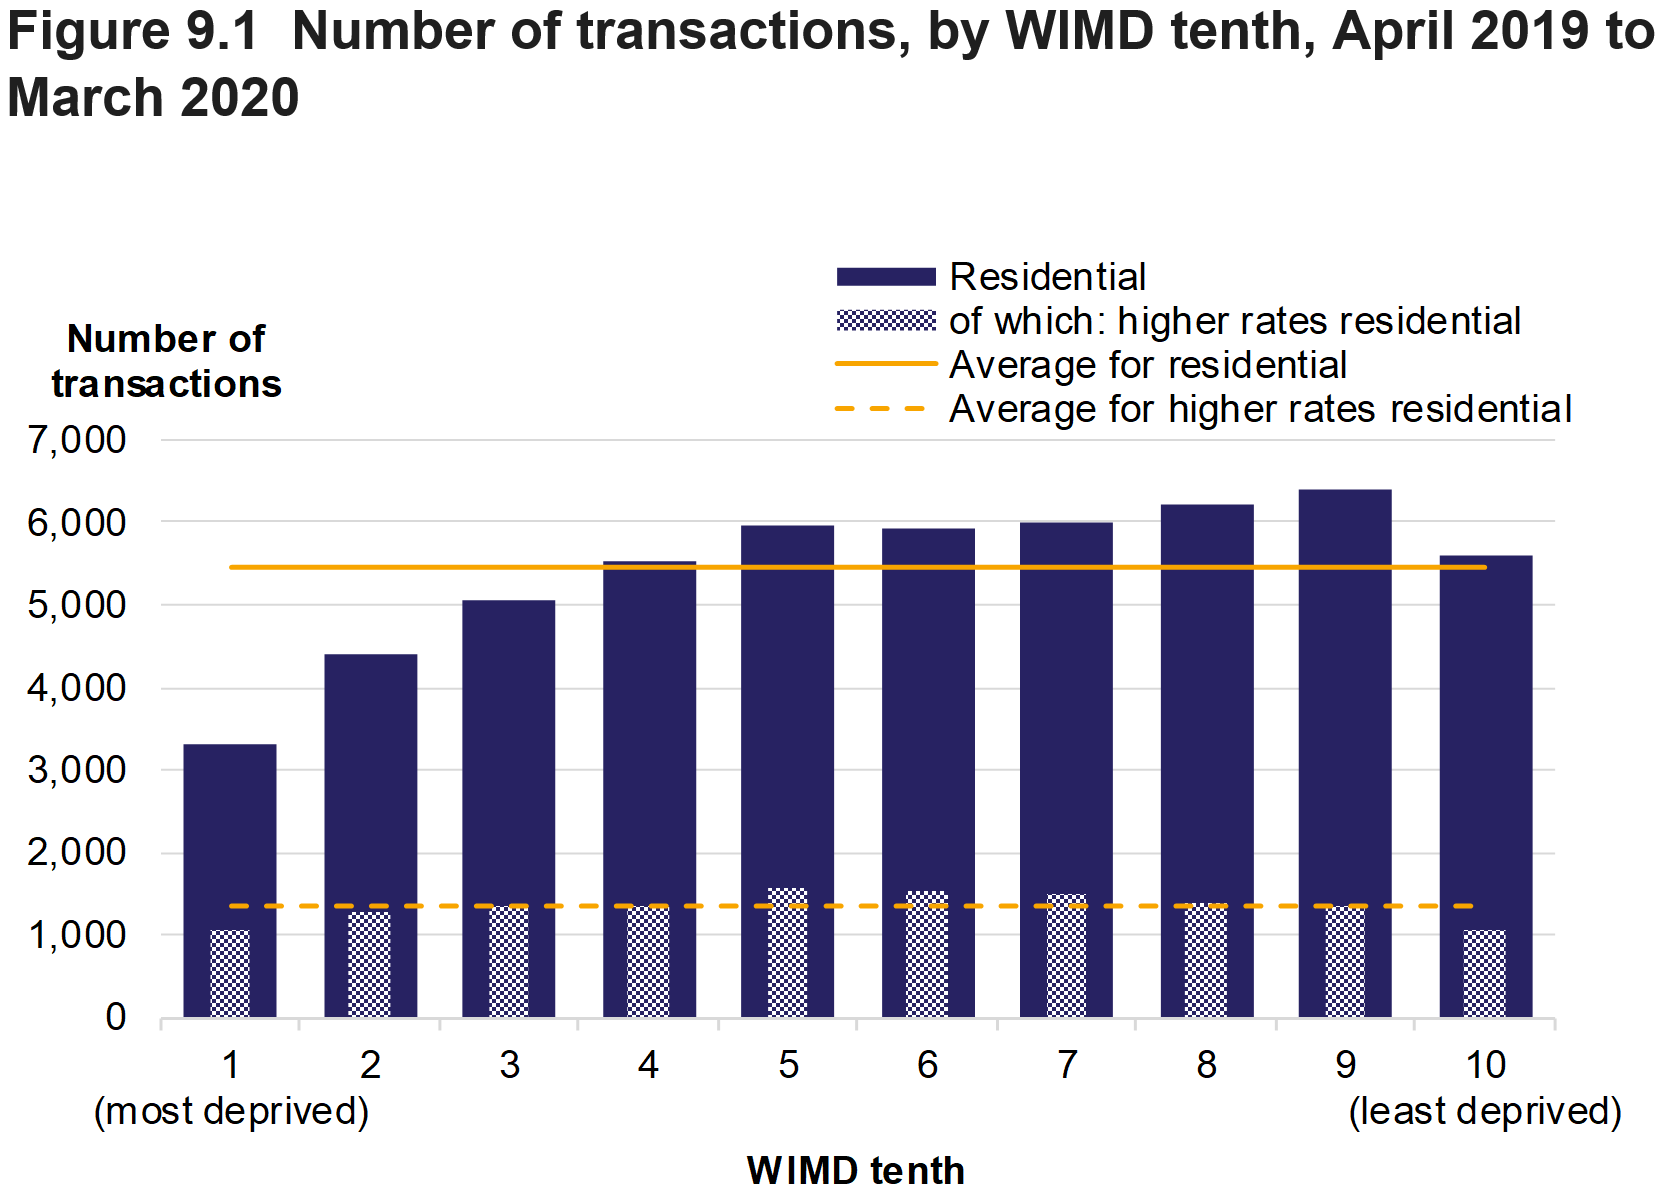 Figure 9.1 shows the number of residential transactions and at the higher rates, by WIMD tenths, for April 2019 to March 2020. Average values over all WIMD tenths are also presented.